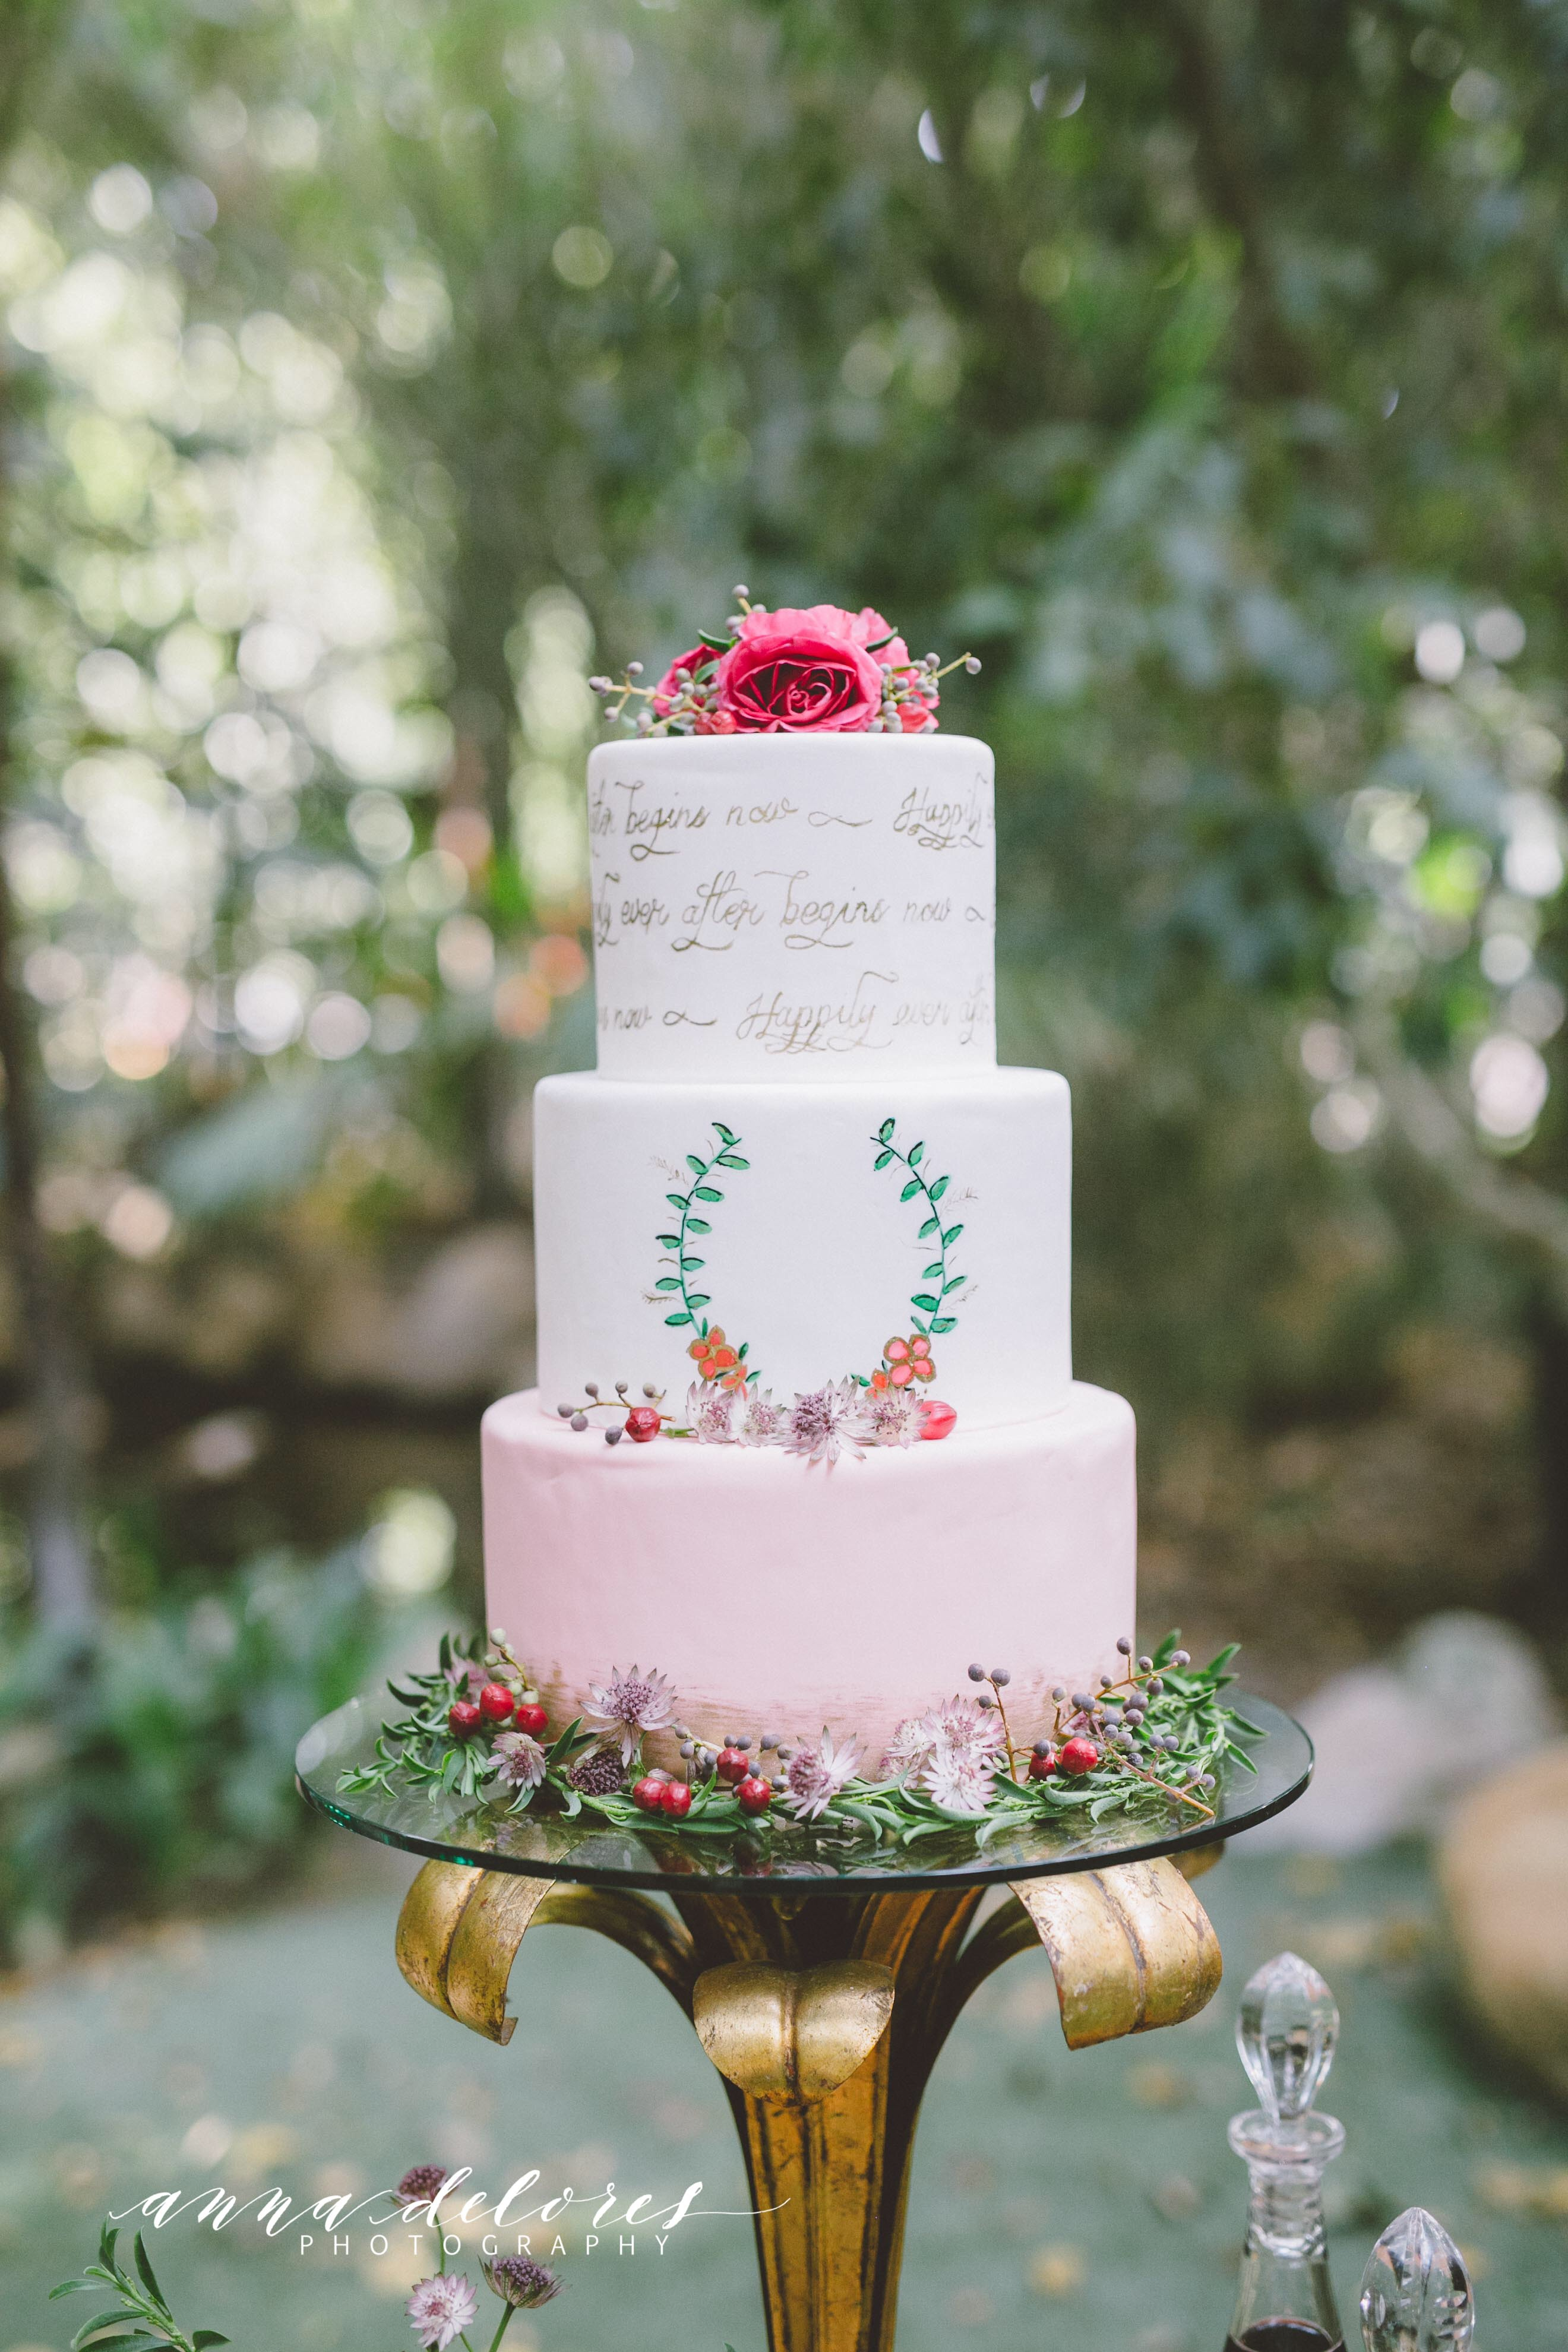 Light pink and white fondant artistic wedding cake